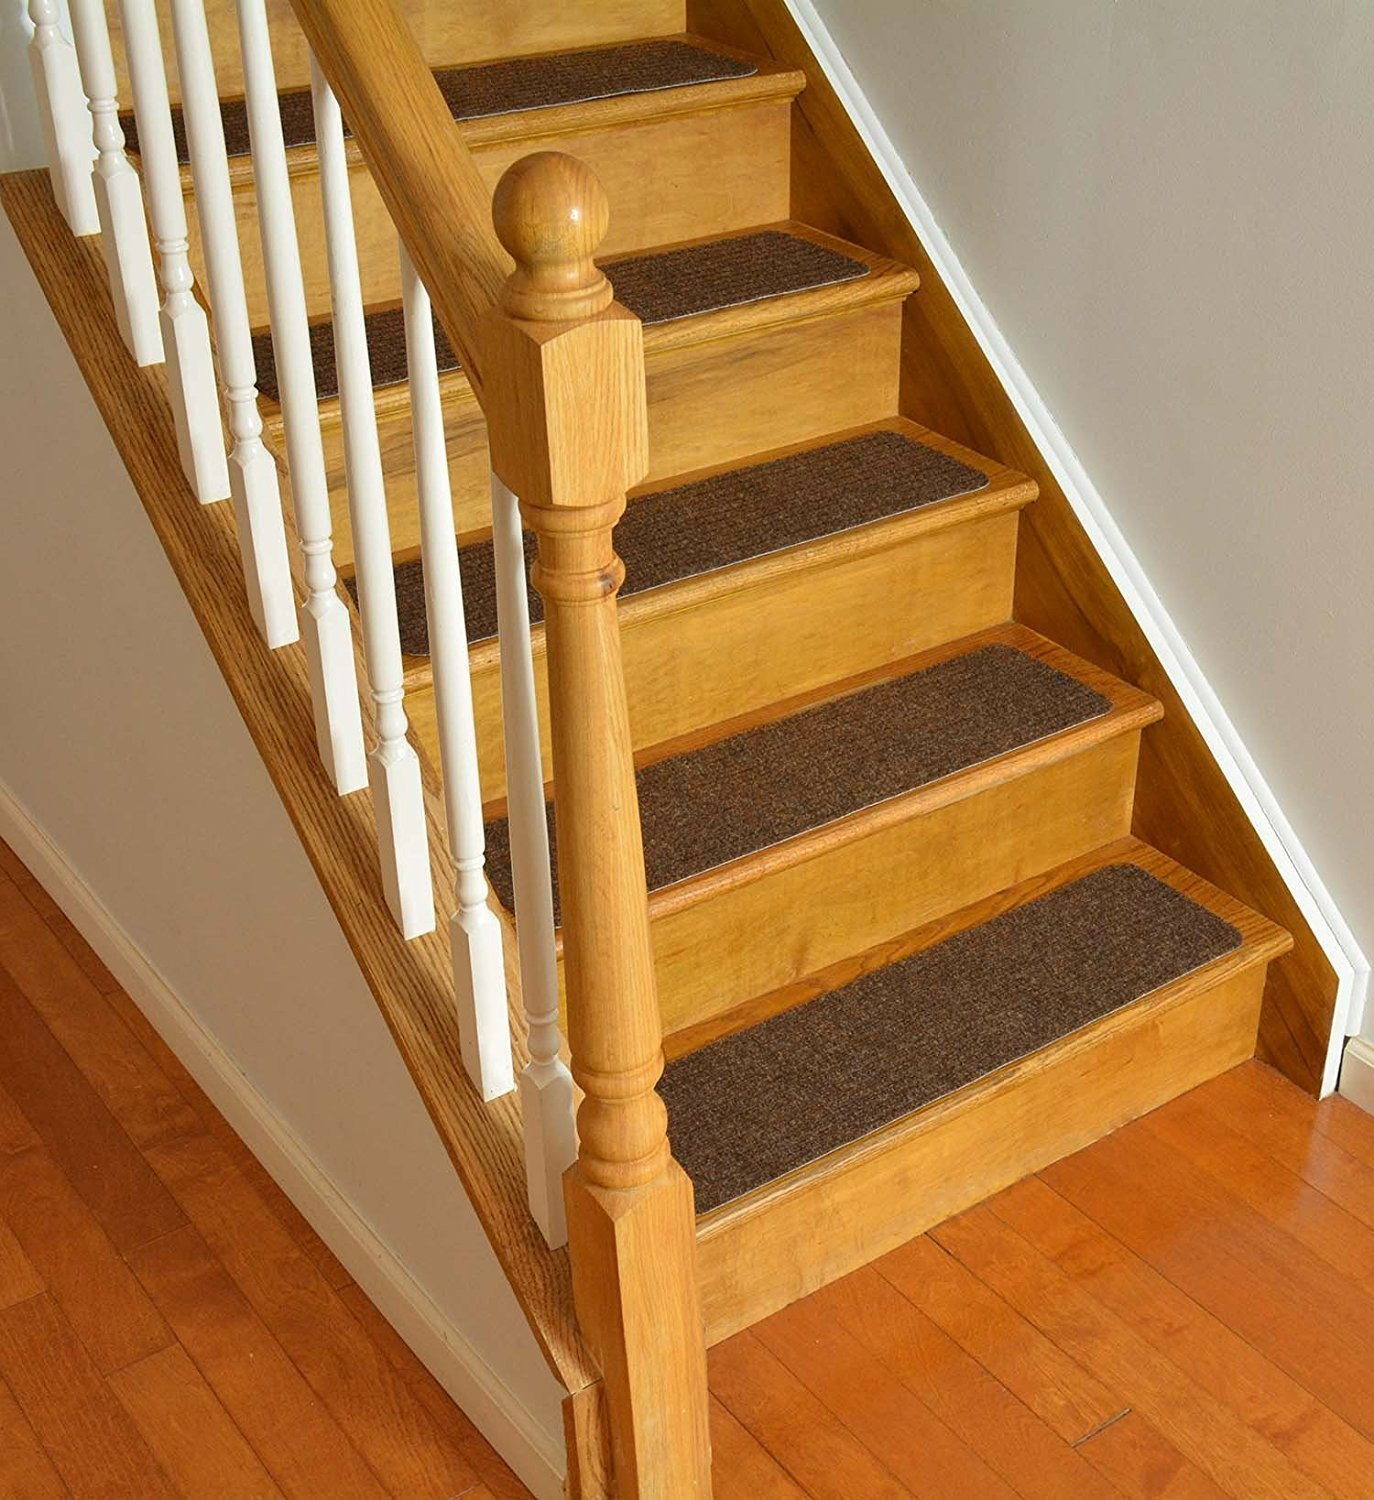 Stair Treads Collection Set Of 13 Indoor Skid Slip Resistant Brown Intended For Skid Resistant Stair Treads (View 7 of 15)